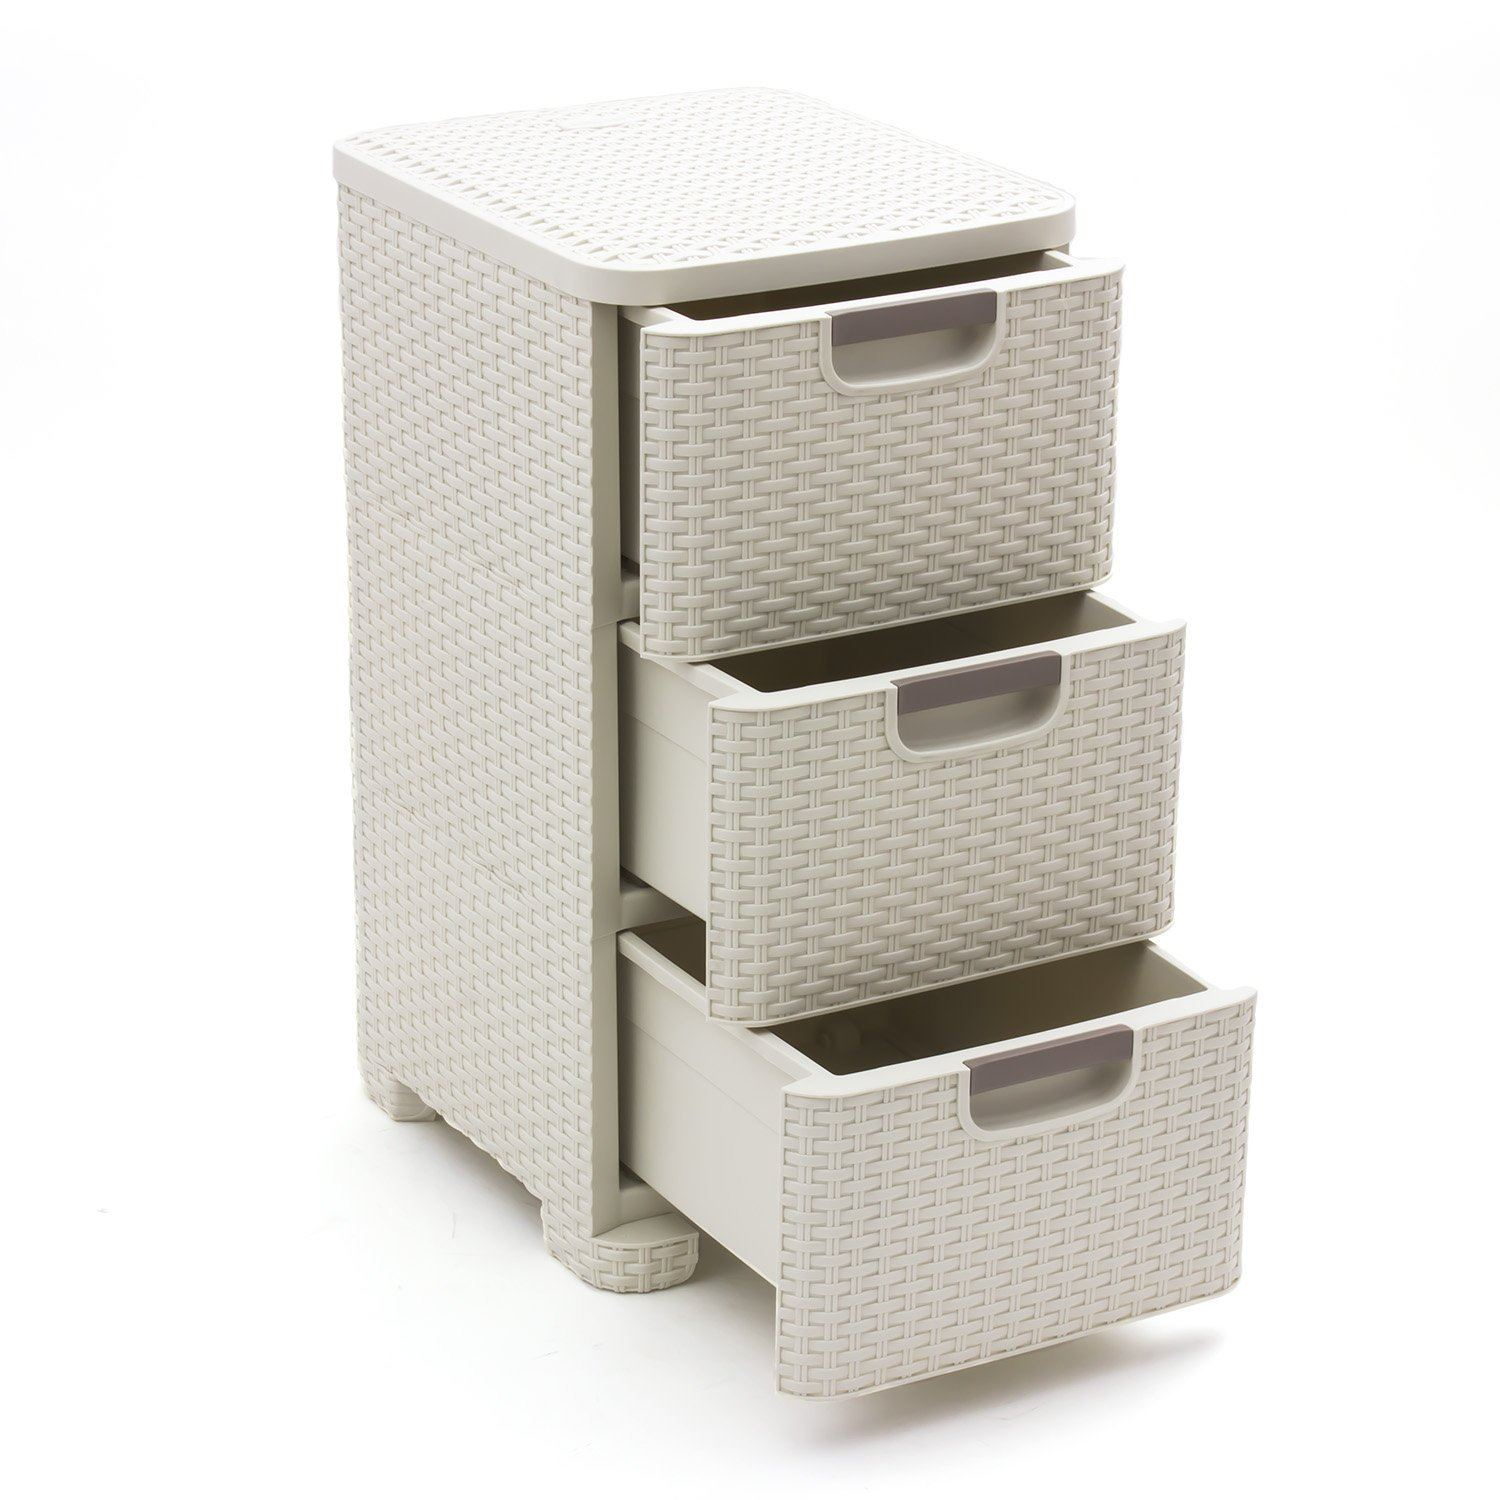 curver rattan 3 tier tower vintage white 14l wicker style drawer storage unit ebay. Black Bedroom Furniture Sets. Home Design Ideas